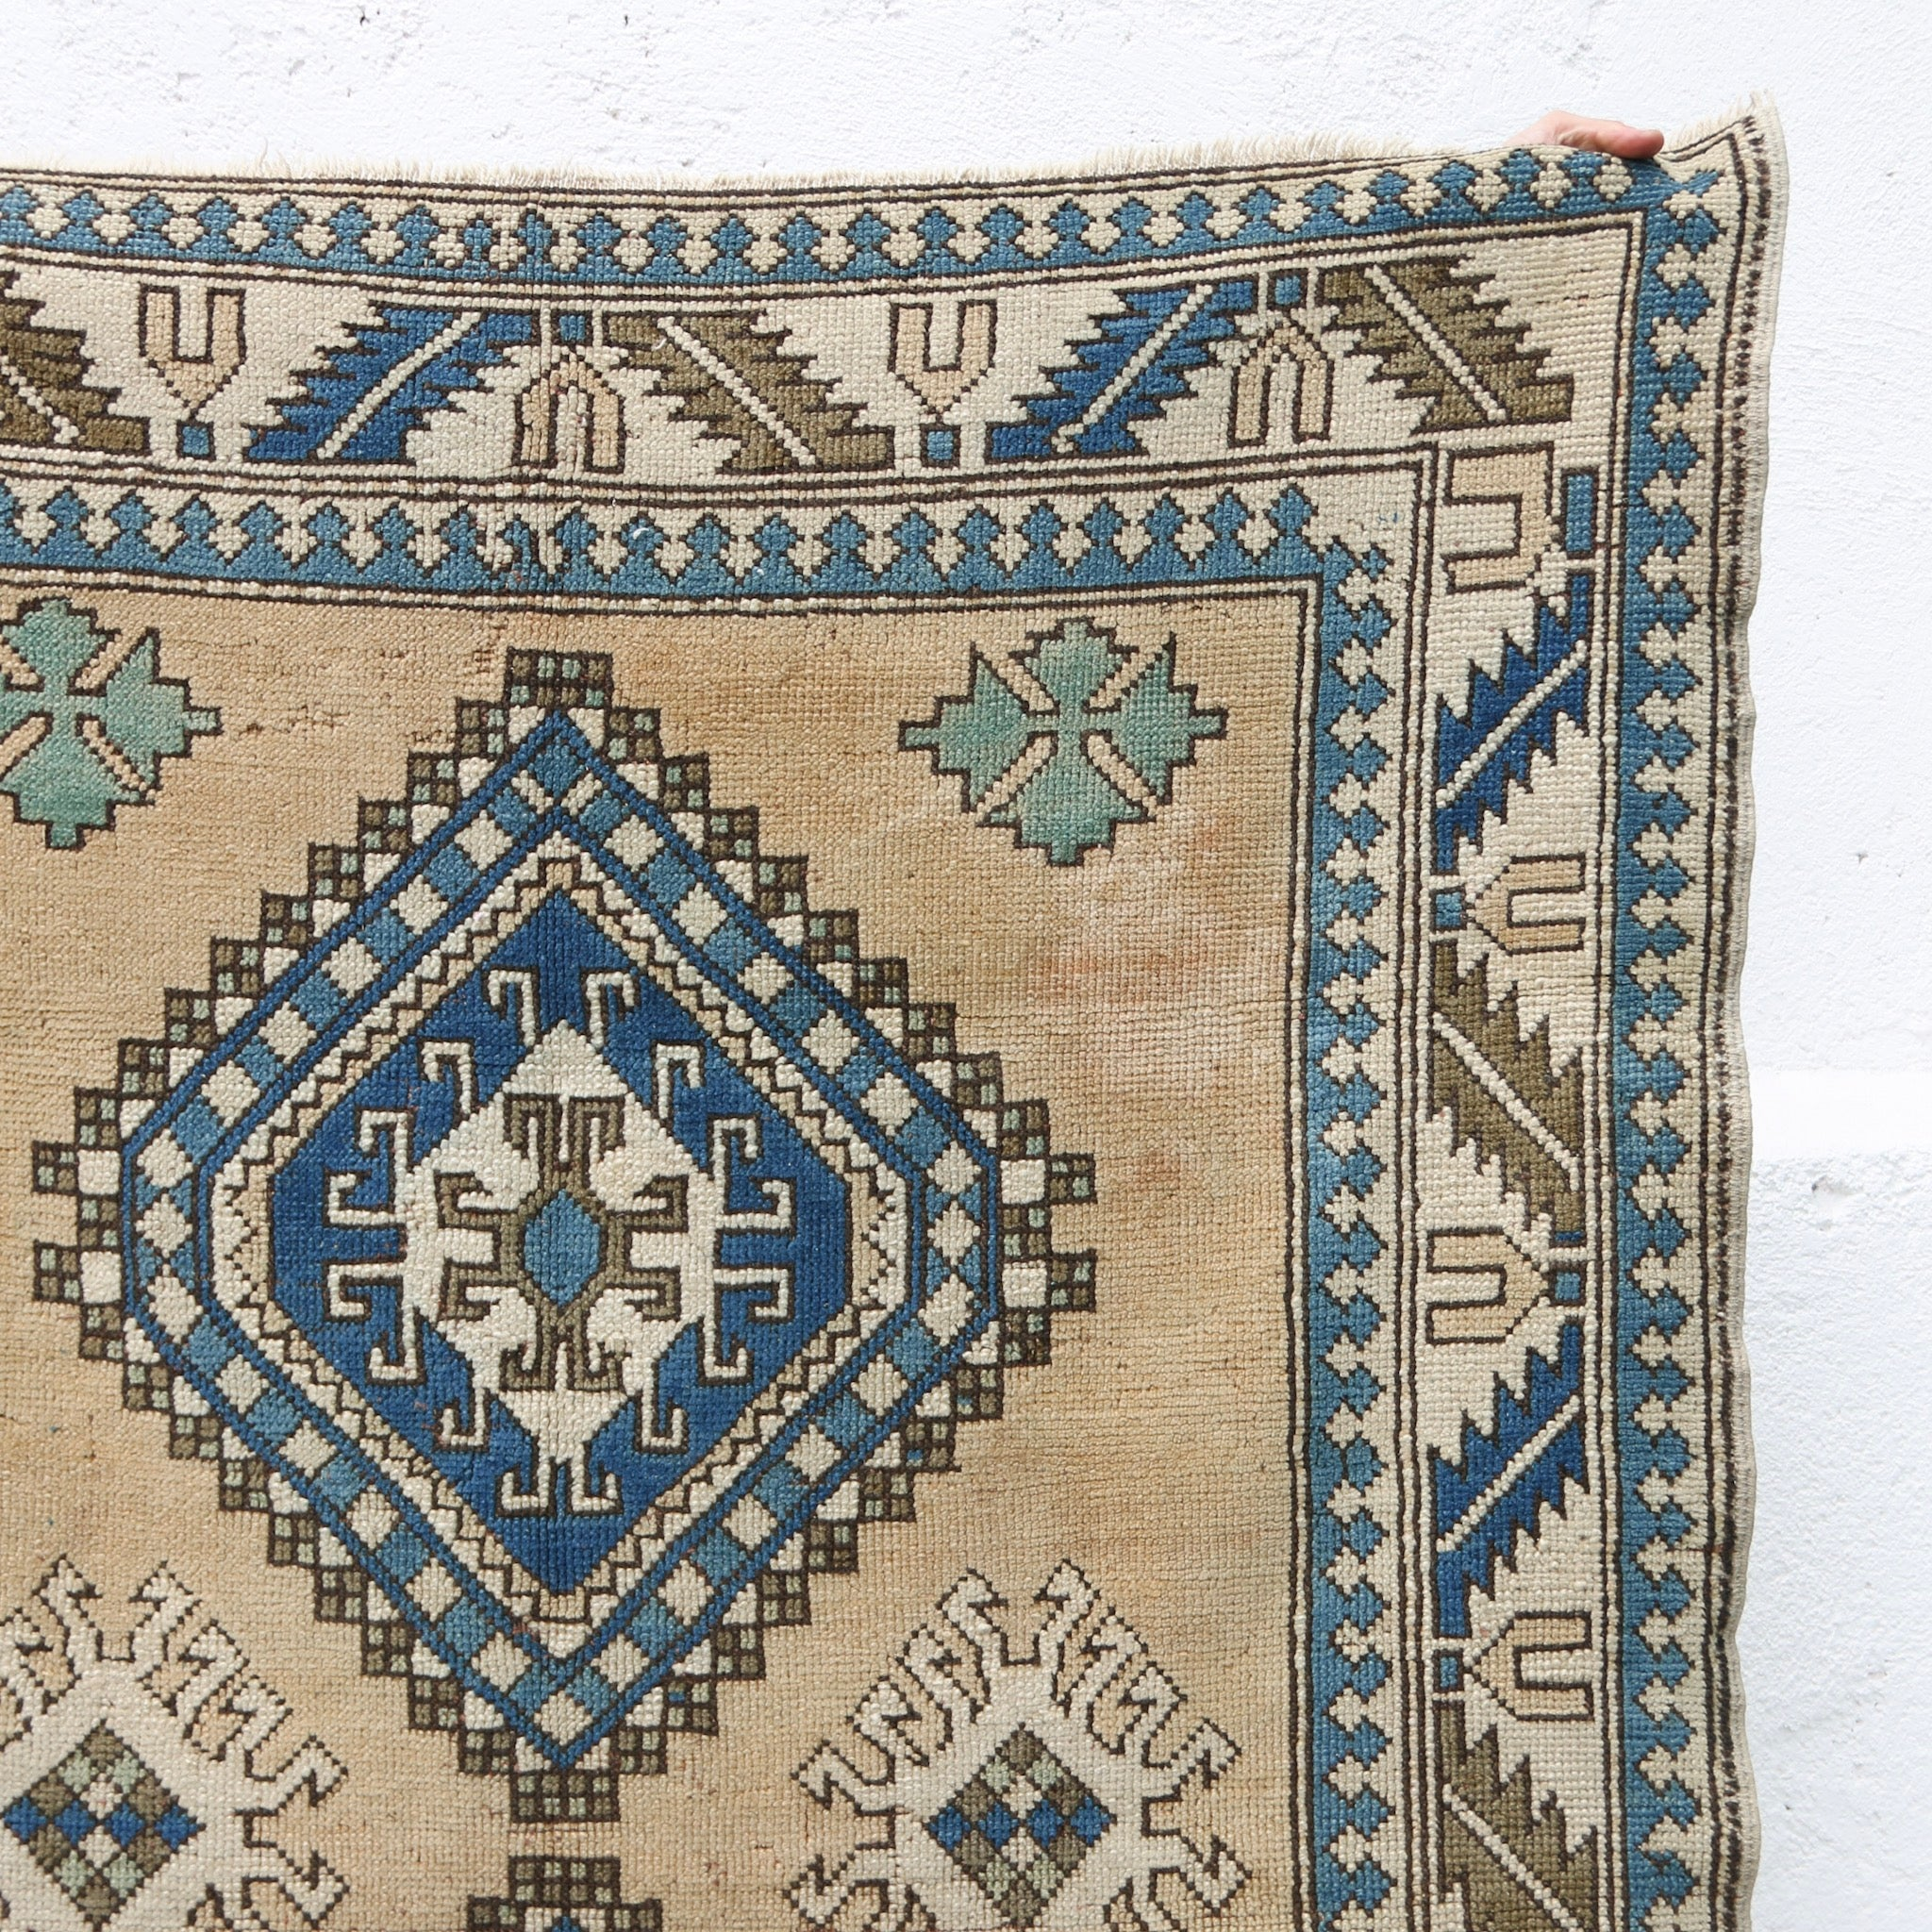 This handwoven vintage Turkish rug is a great neutral with blue, green, and olive accents. Kars.